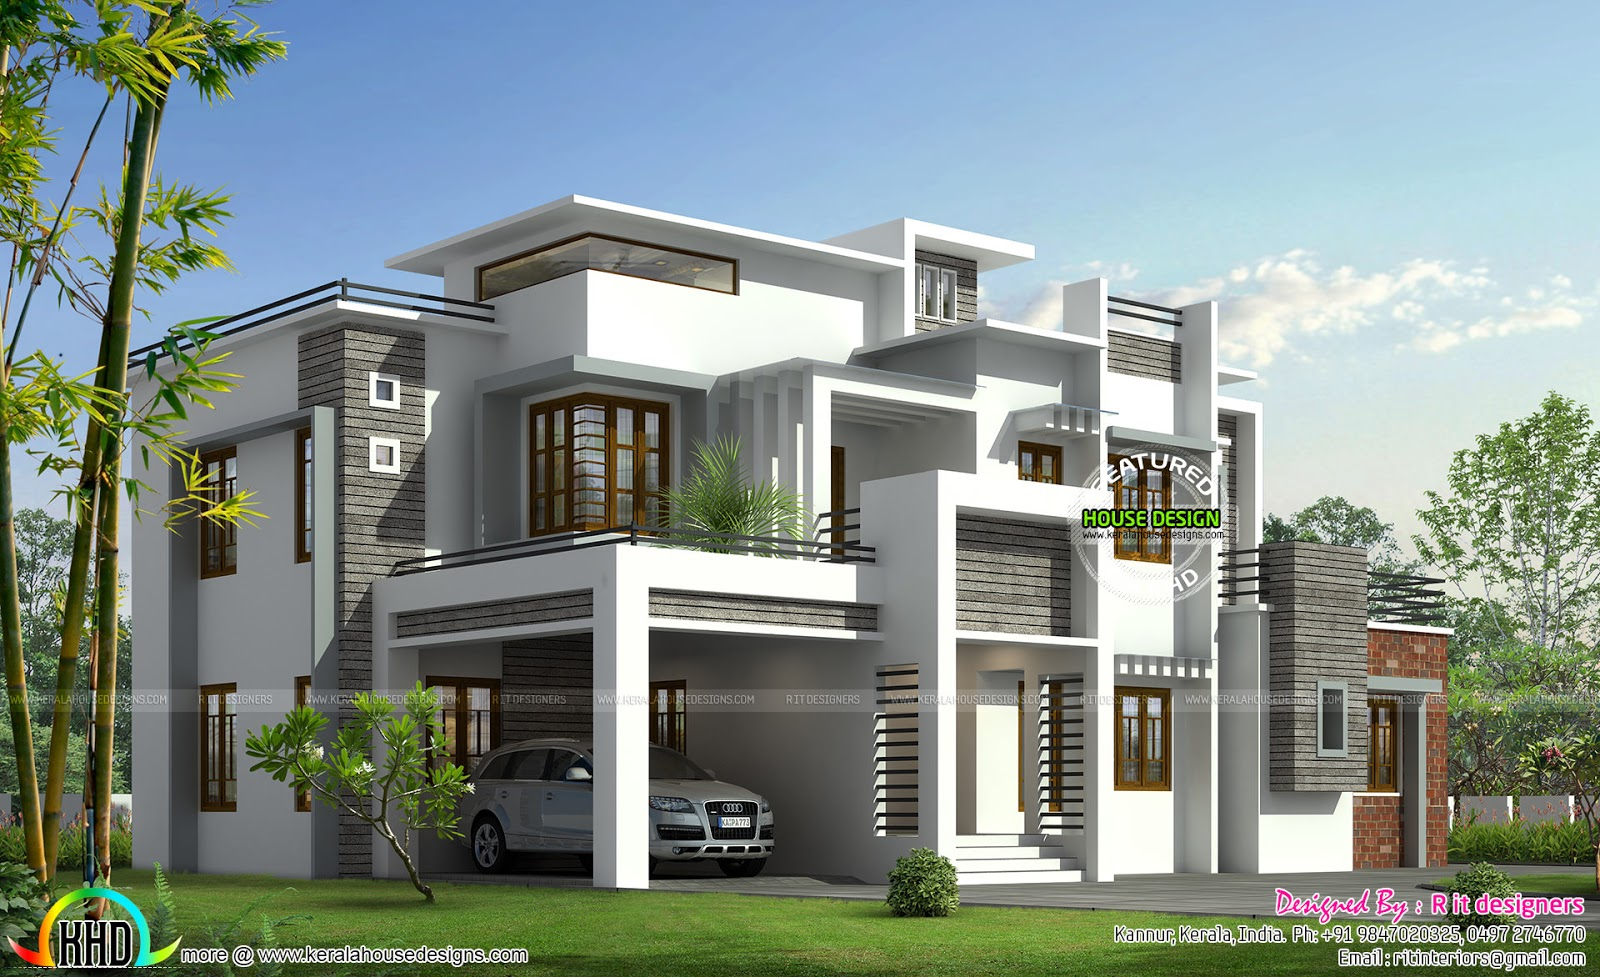 Box model contemporary house kerala home design and for Modern home blueprints